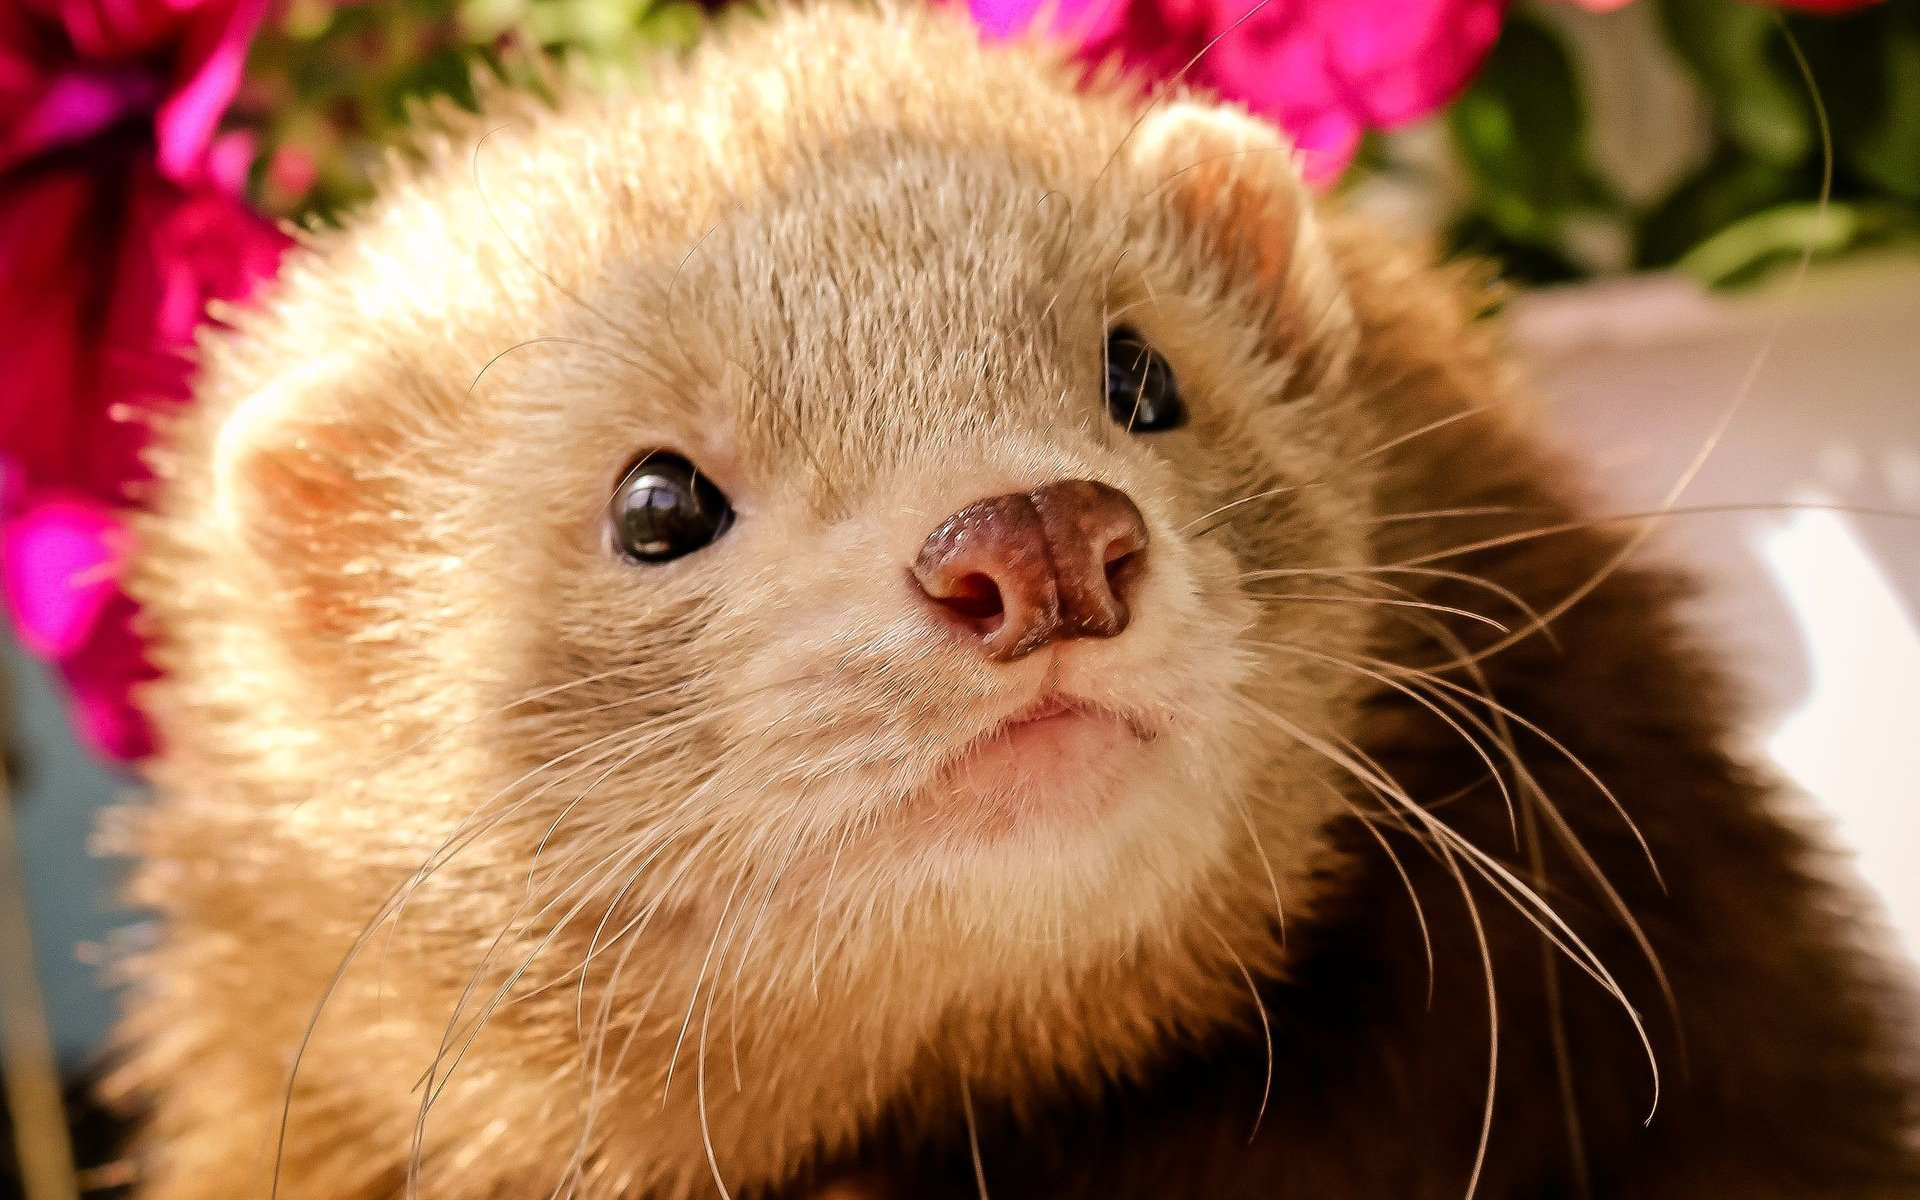 ferret face wallpaper background - photo #11